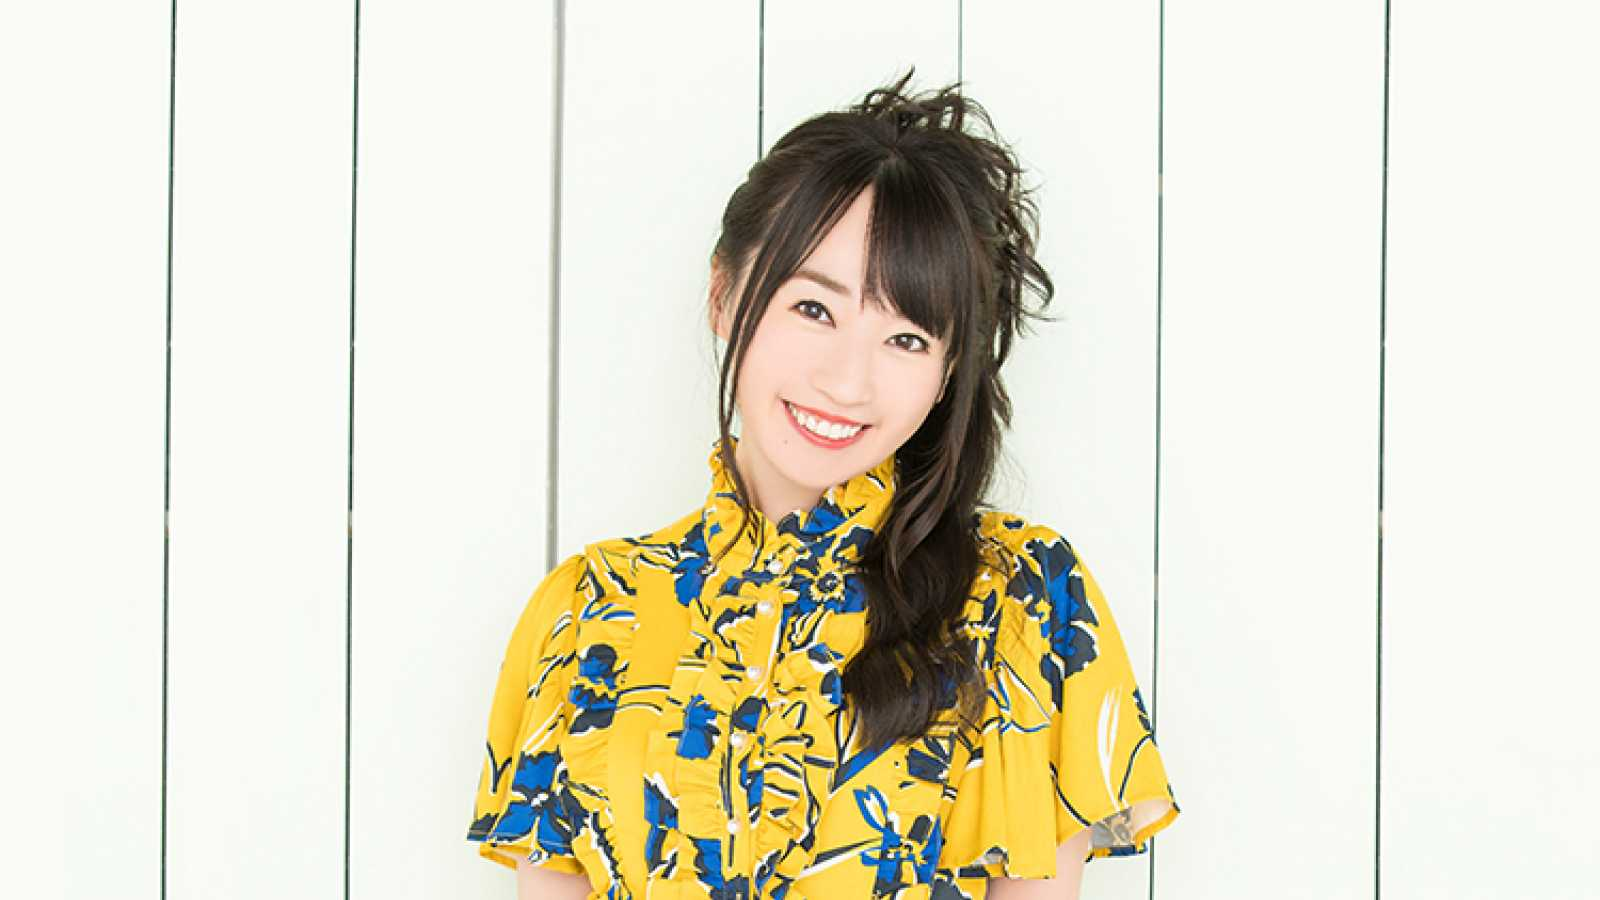 Nana Mizuki - Obake zukan no uta © KING RECORD.CO.,LTD. All Rights Reserved.